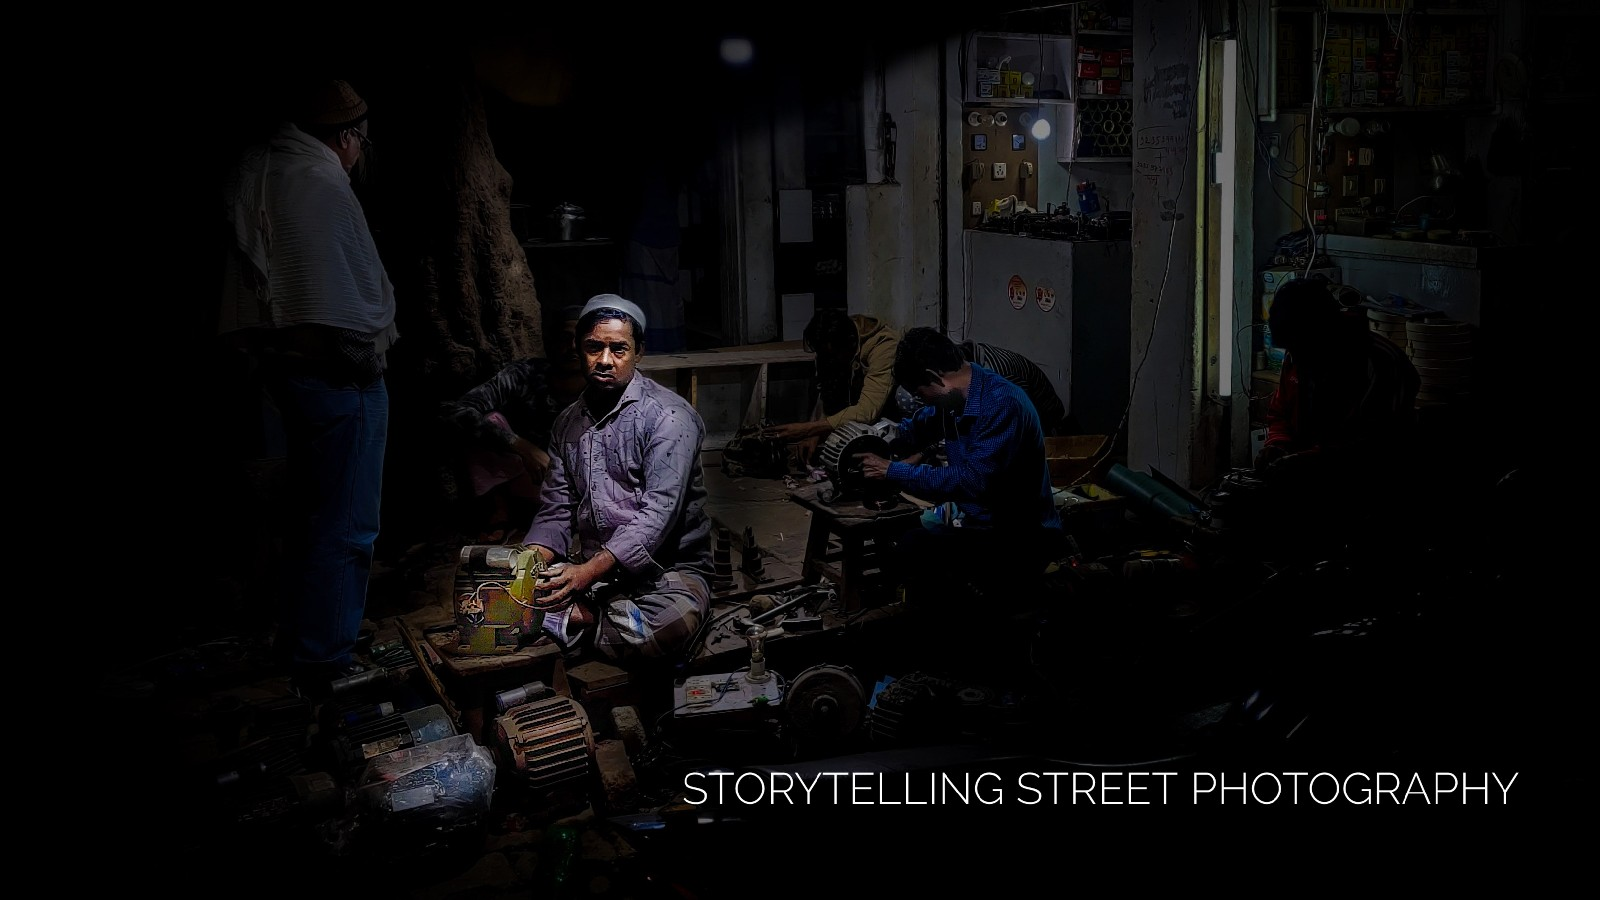 Sample Images for Storytelling Street Photography